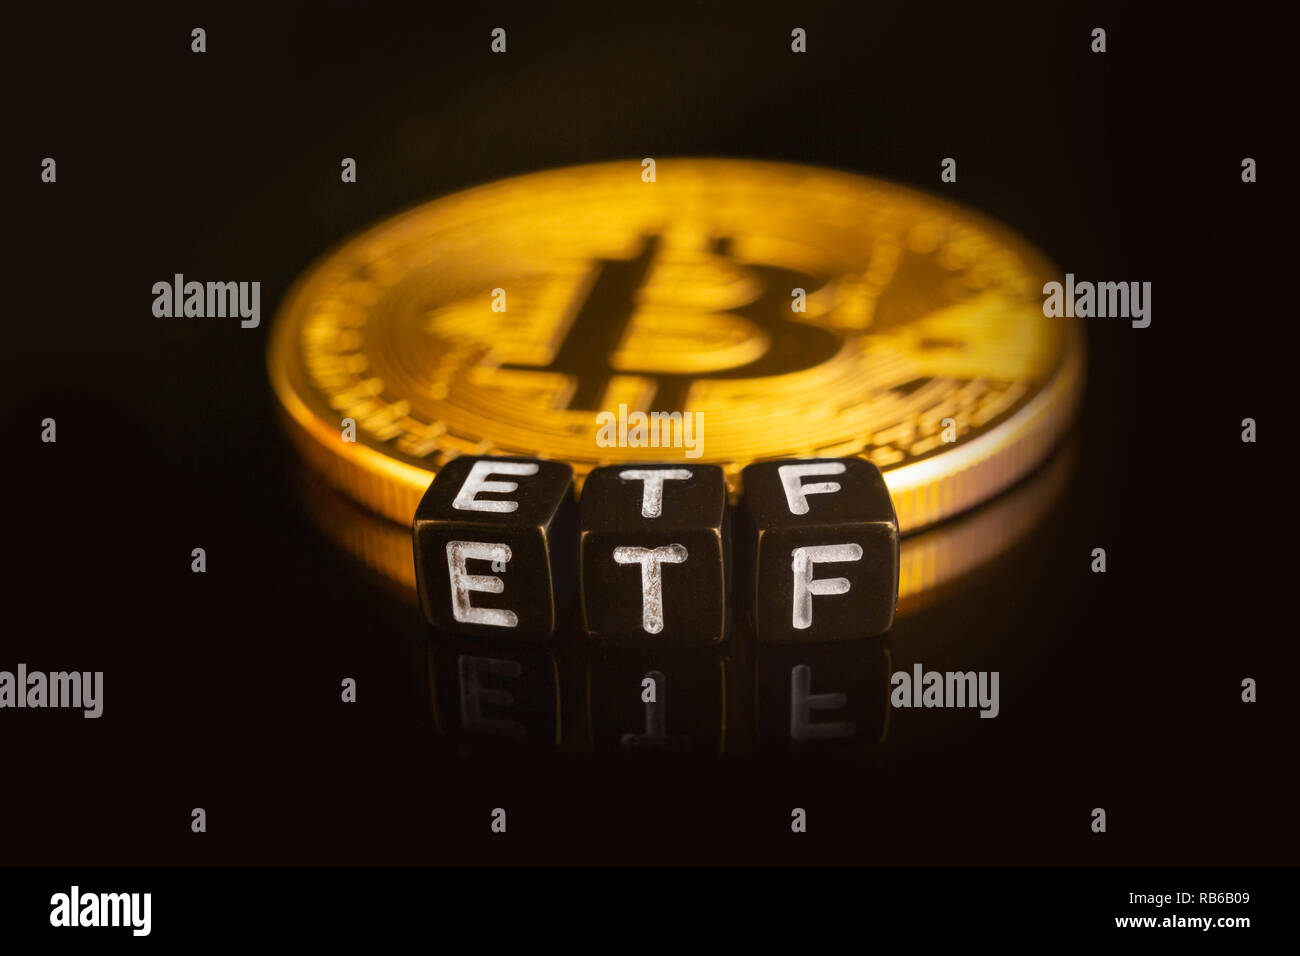 Bitcoin Exchange-traded fund ETF launch concept with coins and letters Stock Photo